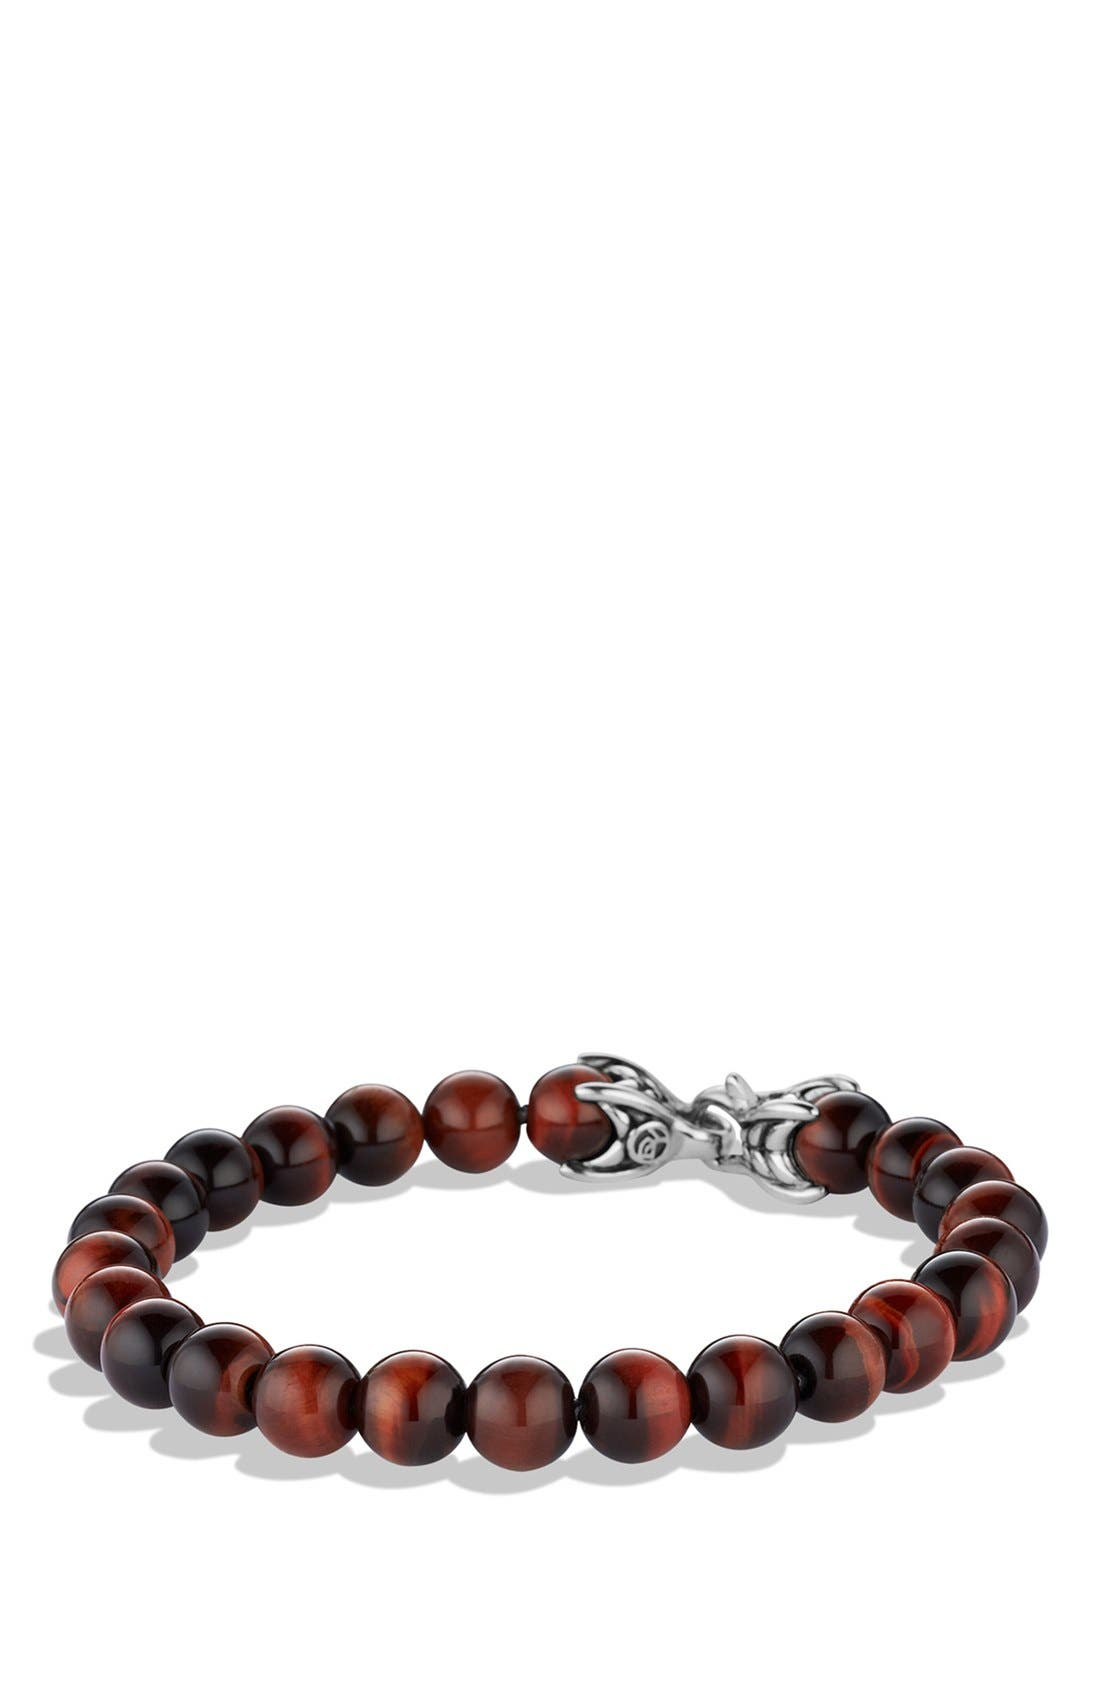 'Spiritual Beads' Bracelet with Tiger's Eye,                             Main thumbnail 1, color,                             TIGER EYE